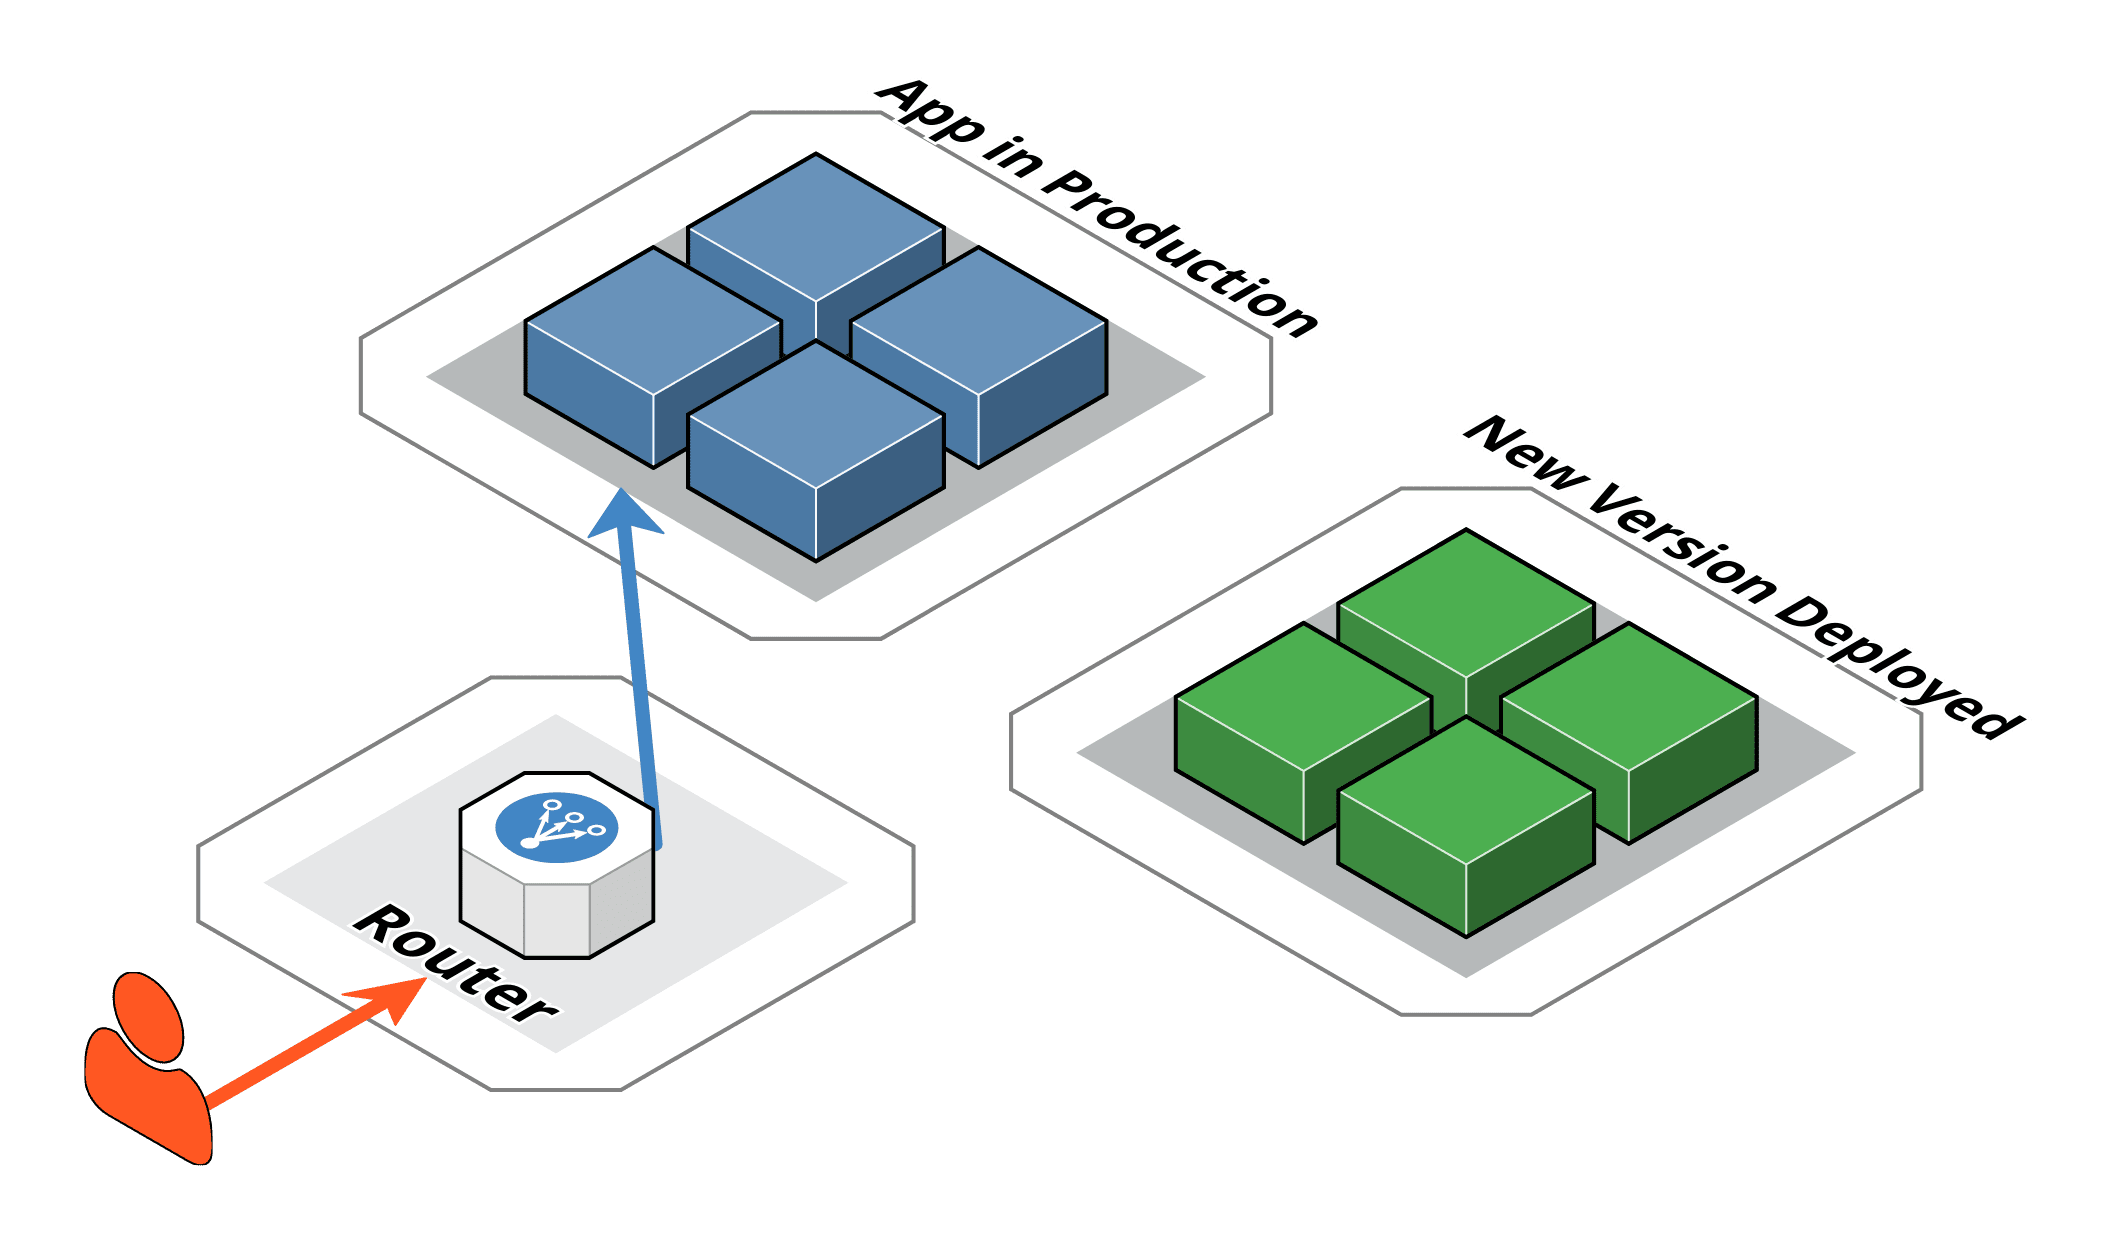 An image with blue deployment (old version of the service) receives 100% of the traffic. The green (new) version is deployed but router still routes all traffic to the old version.